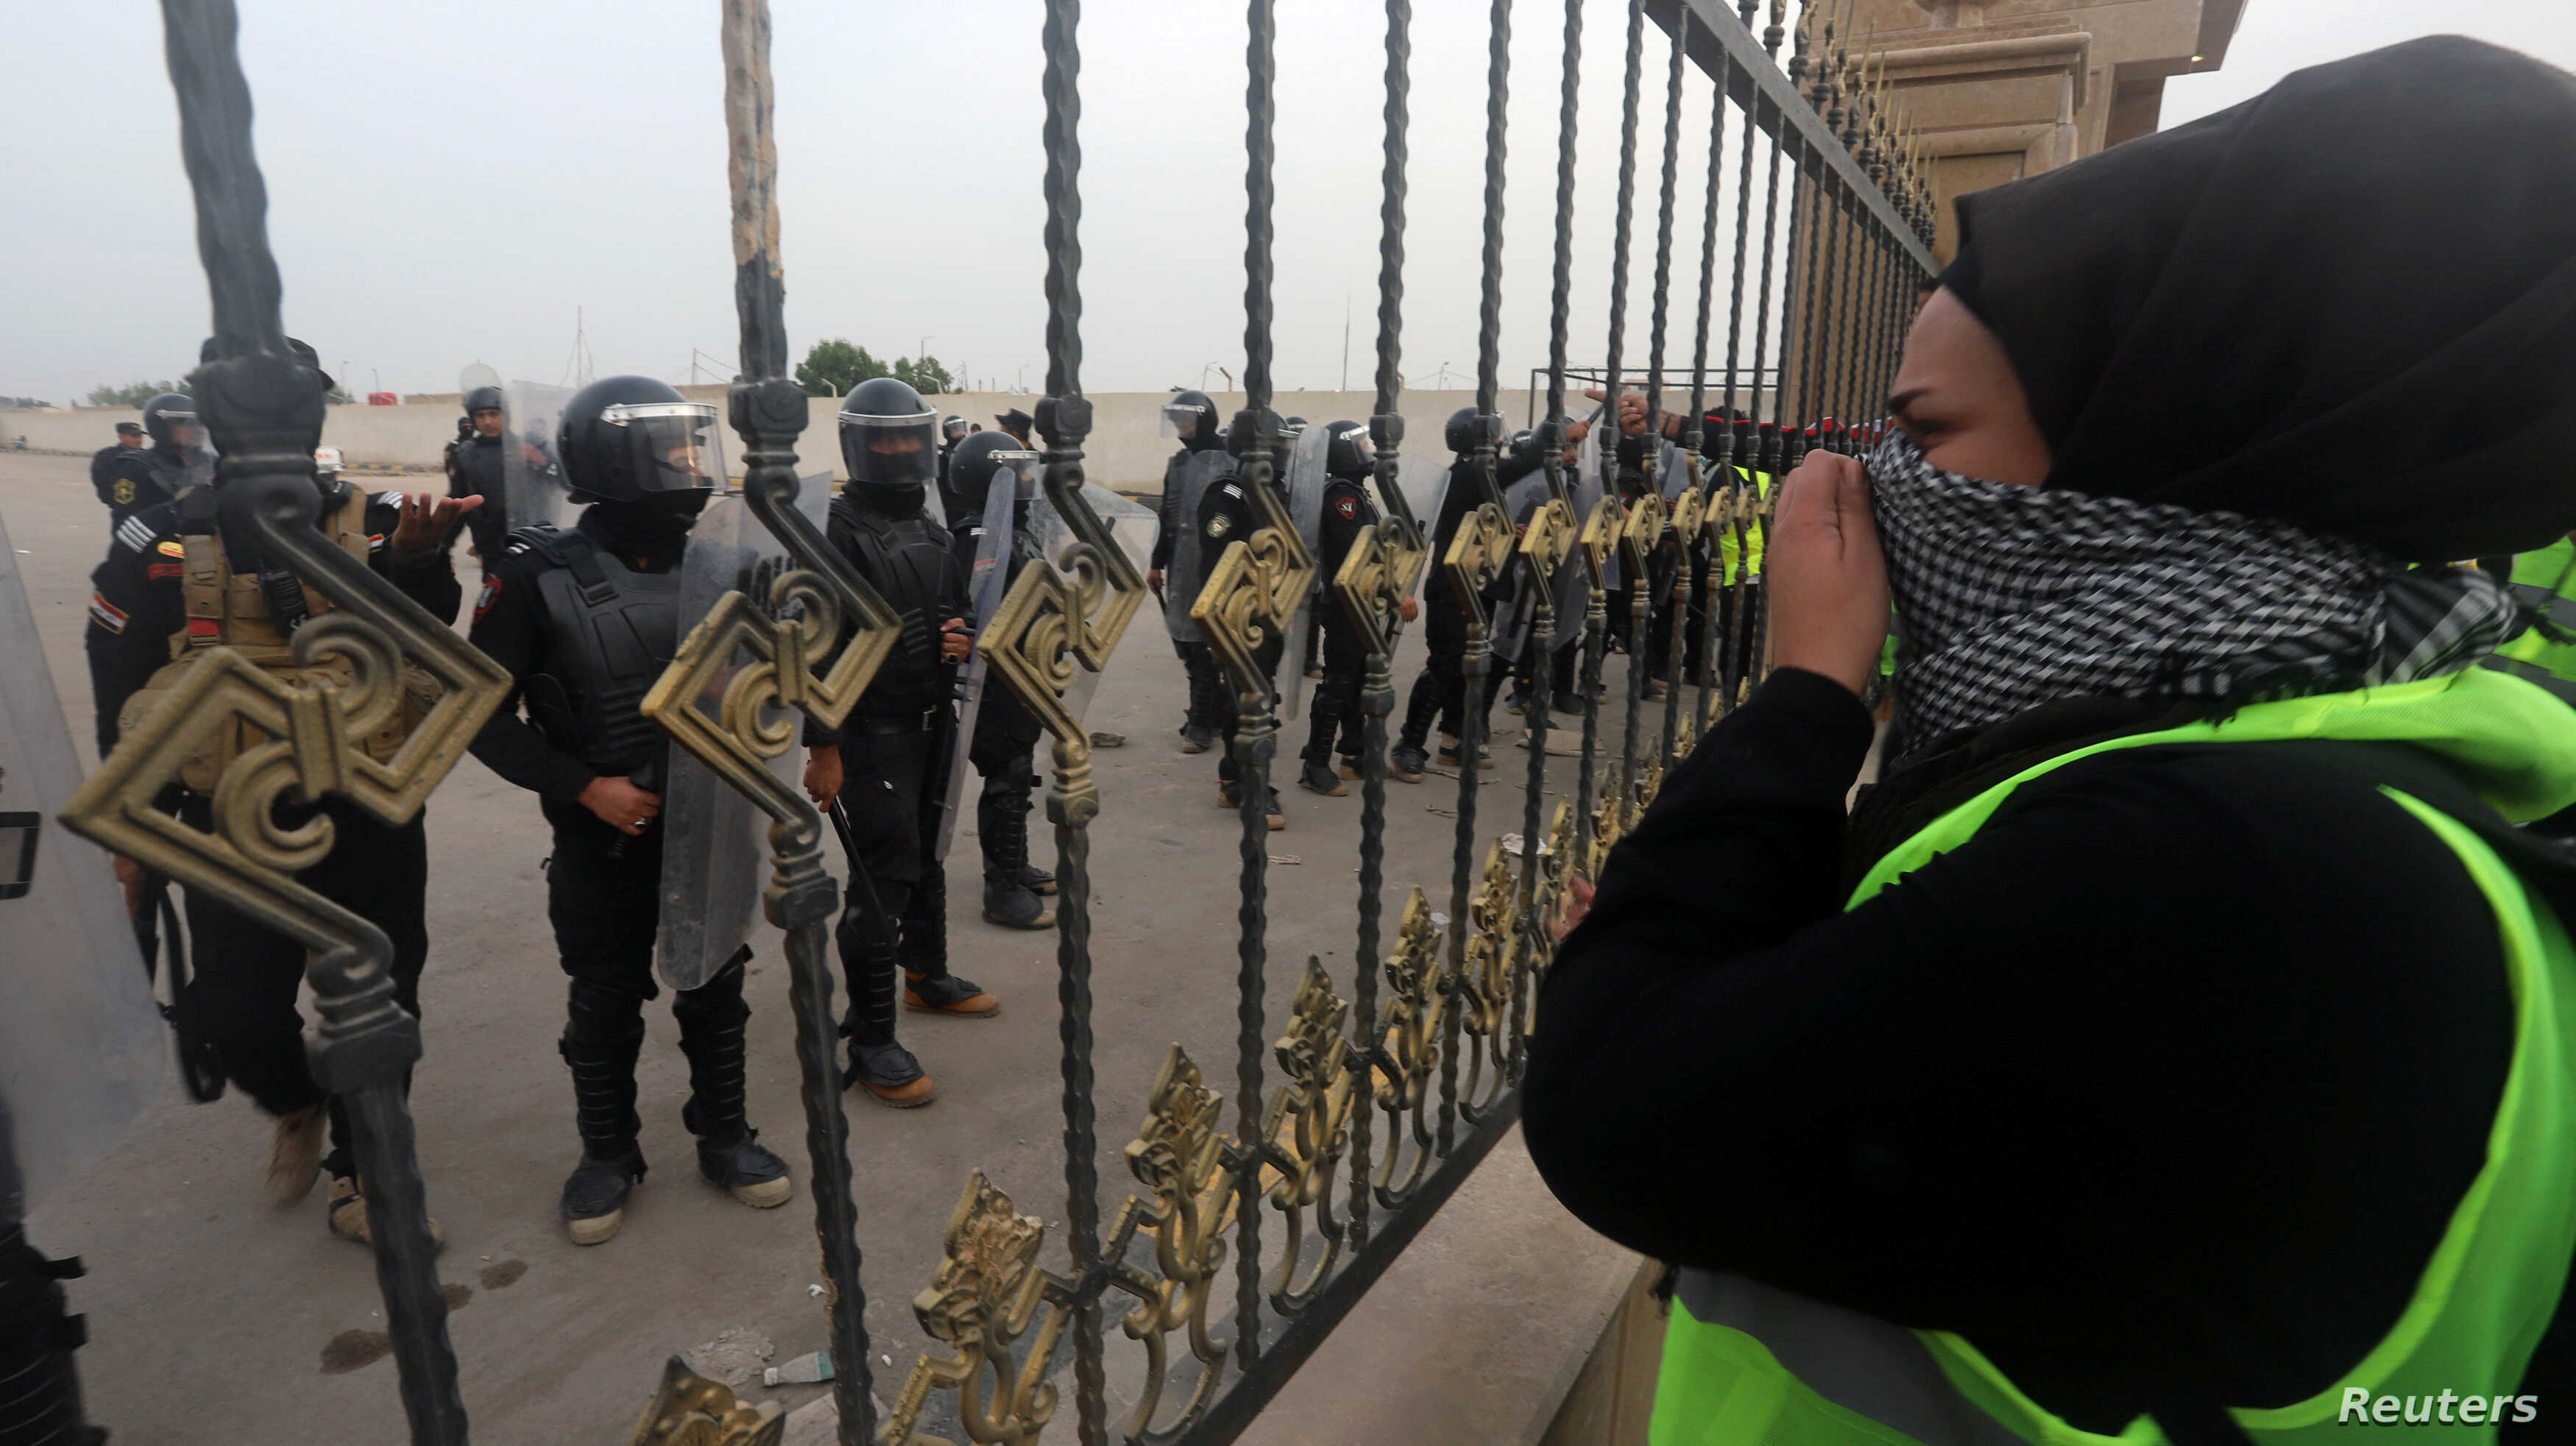 Iraqi demonstrators stand in front of Iraqi security forces during an anti-government protest near the government building in Basra, Iraq Dec. 4, 2018.